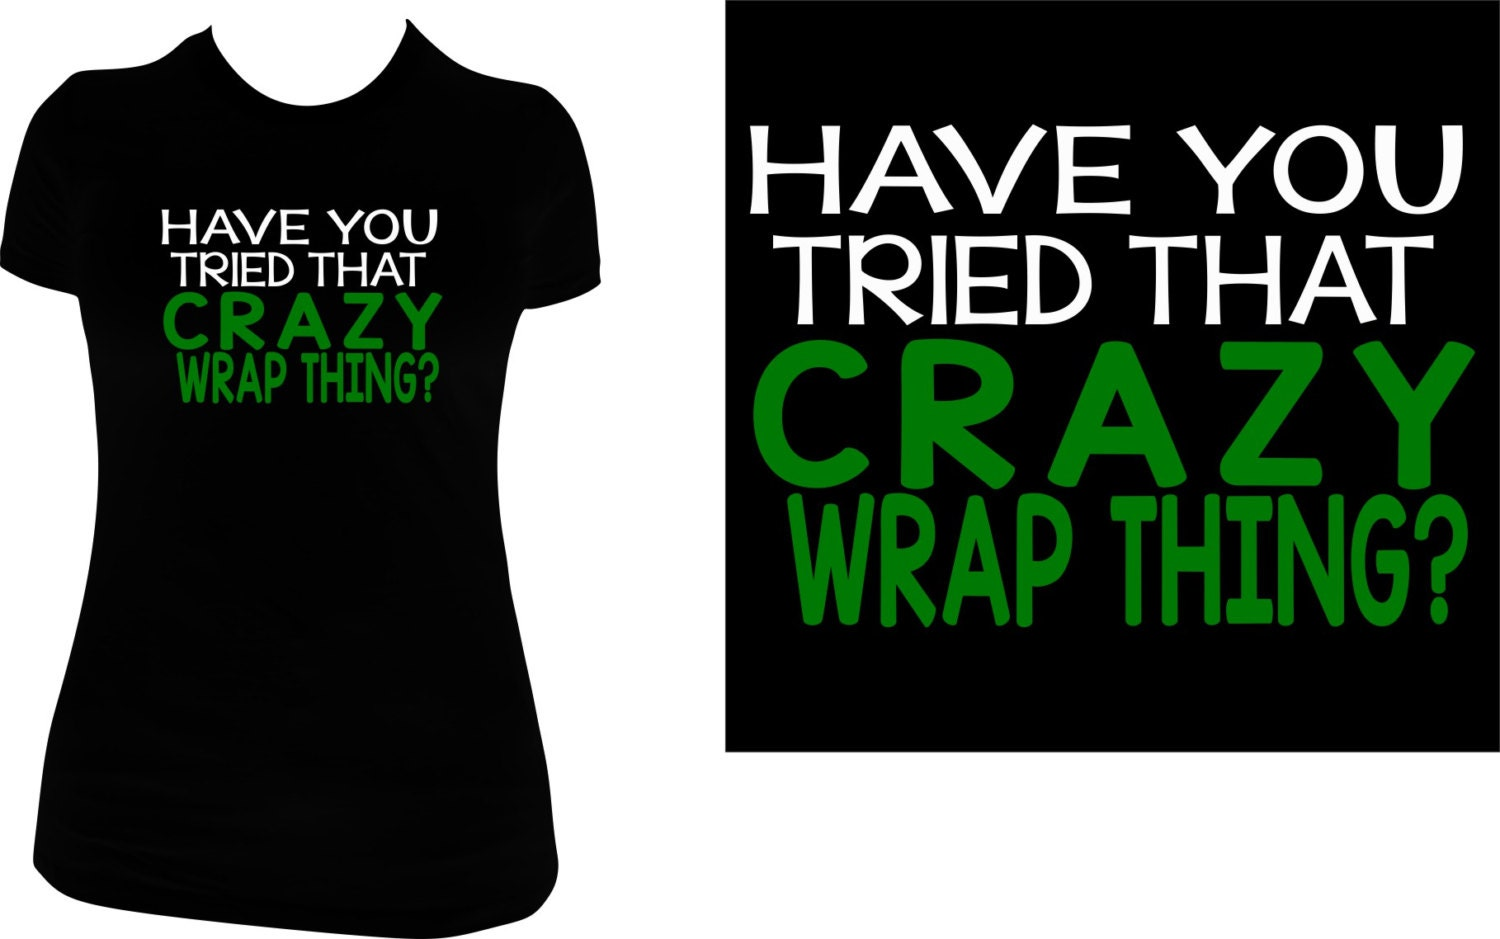 Have you tried that crazy wrap thing black shirt by bdcornelius